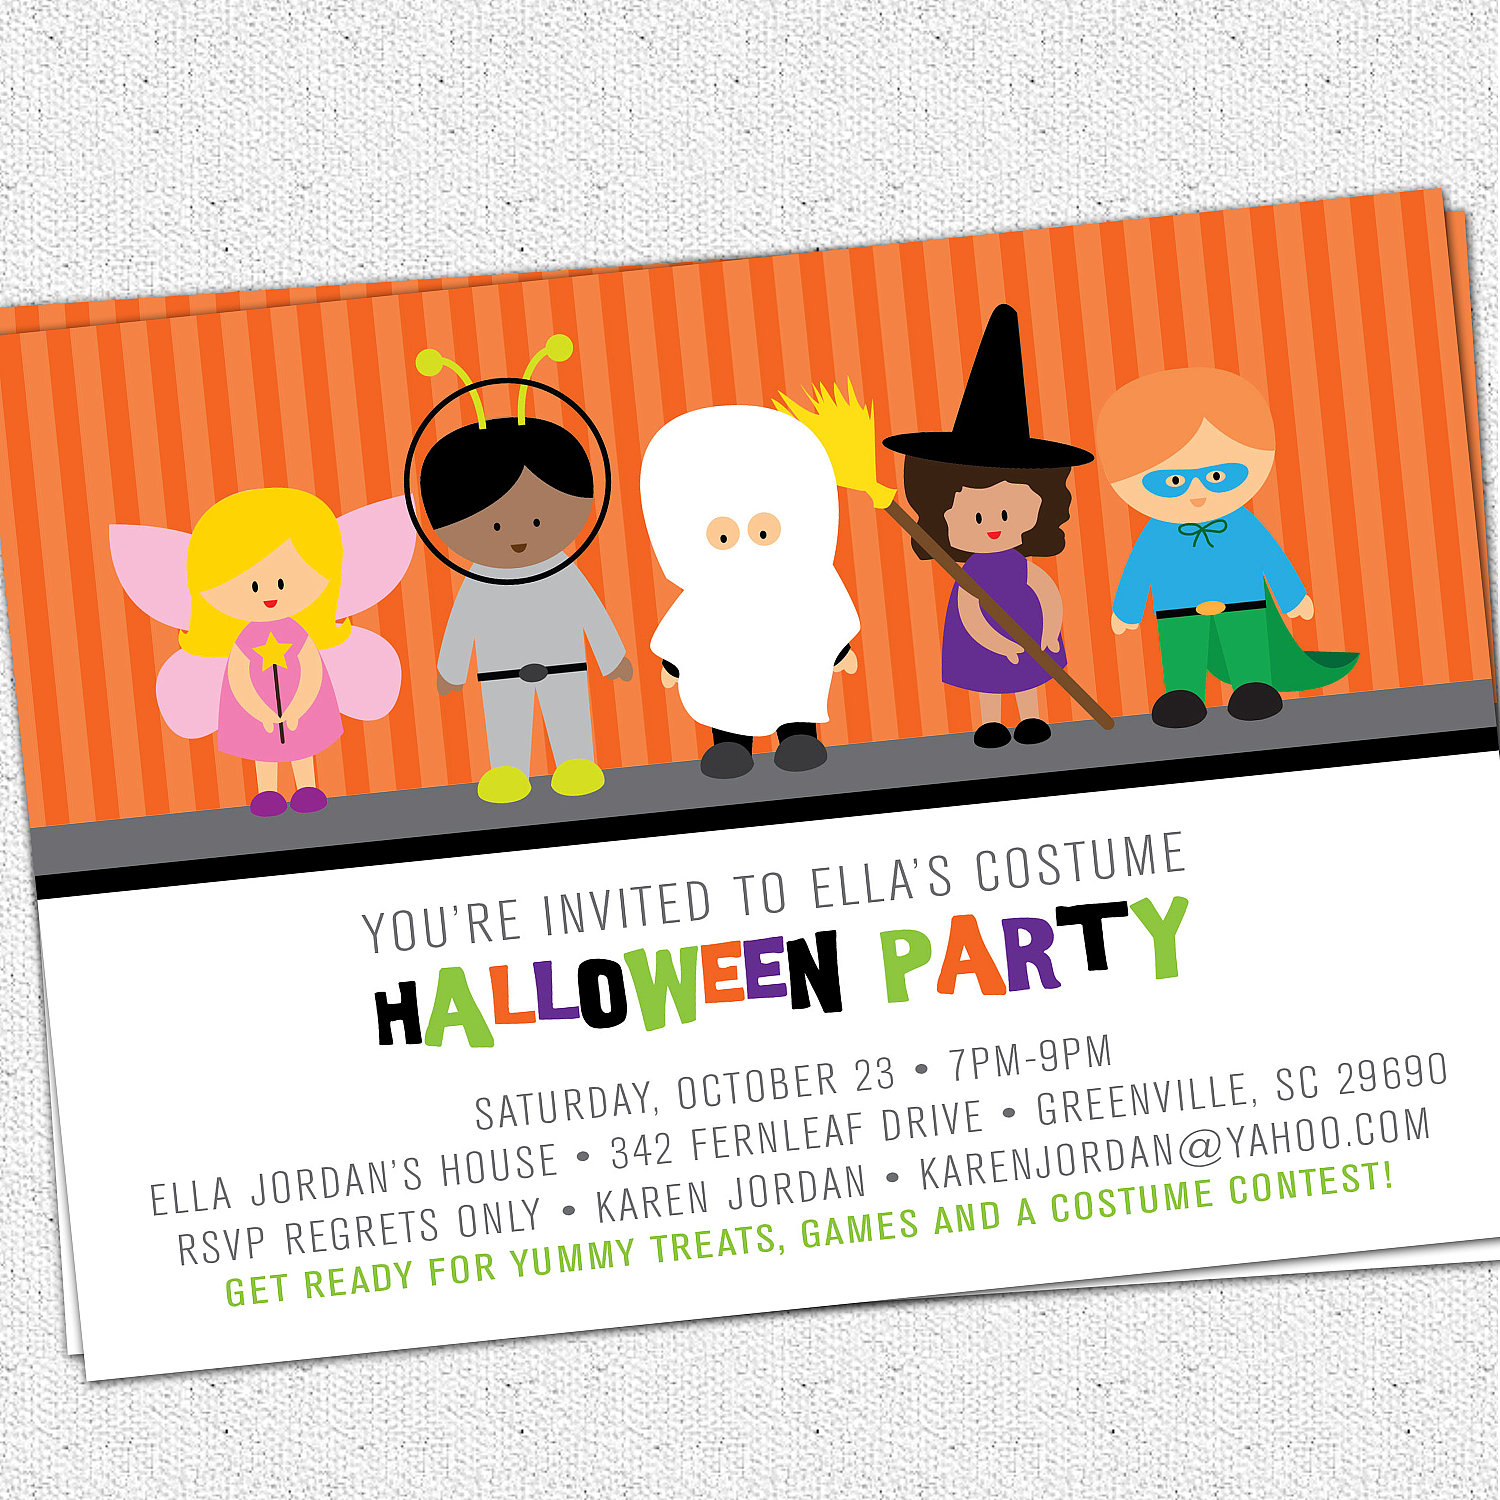 printable halloween birthday invitations ; 270-13th-birthday-party-invitations-templates-13th-birthday-party-invitations-templates-29-free-printable-halloween-invitations-for-kids-fun-for-christmas-draft-of